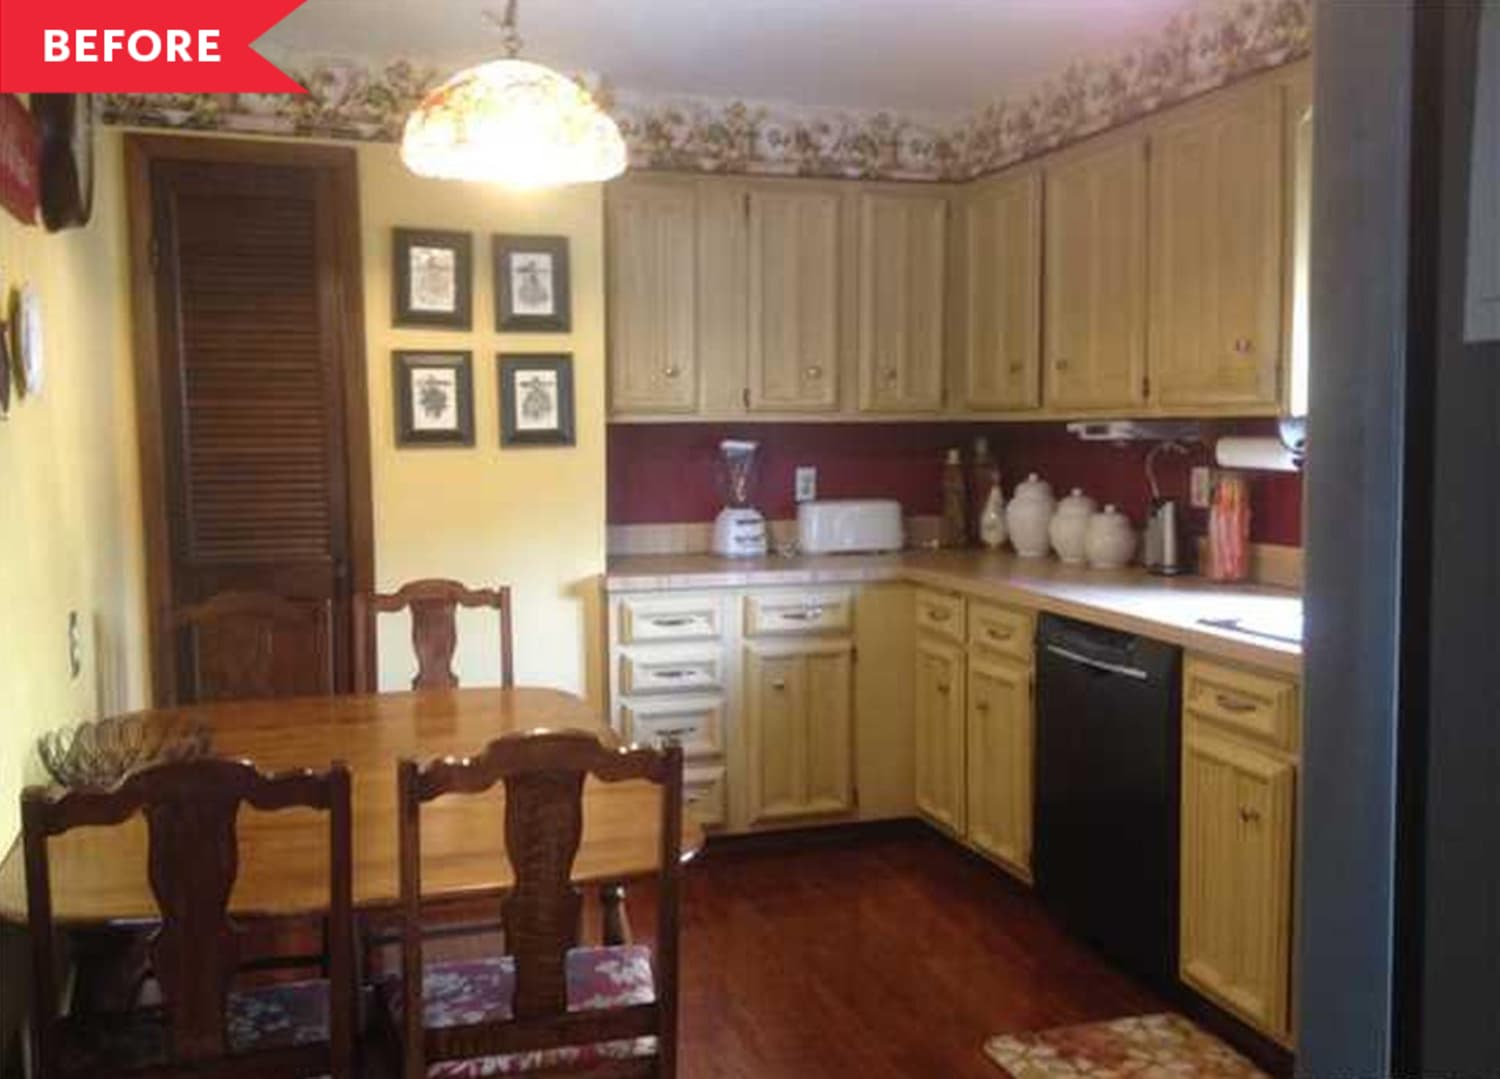 Before & After: IKEA Cabinets Set the Stage for This Stunning $5,000 Kitchen Redo